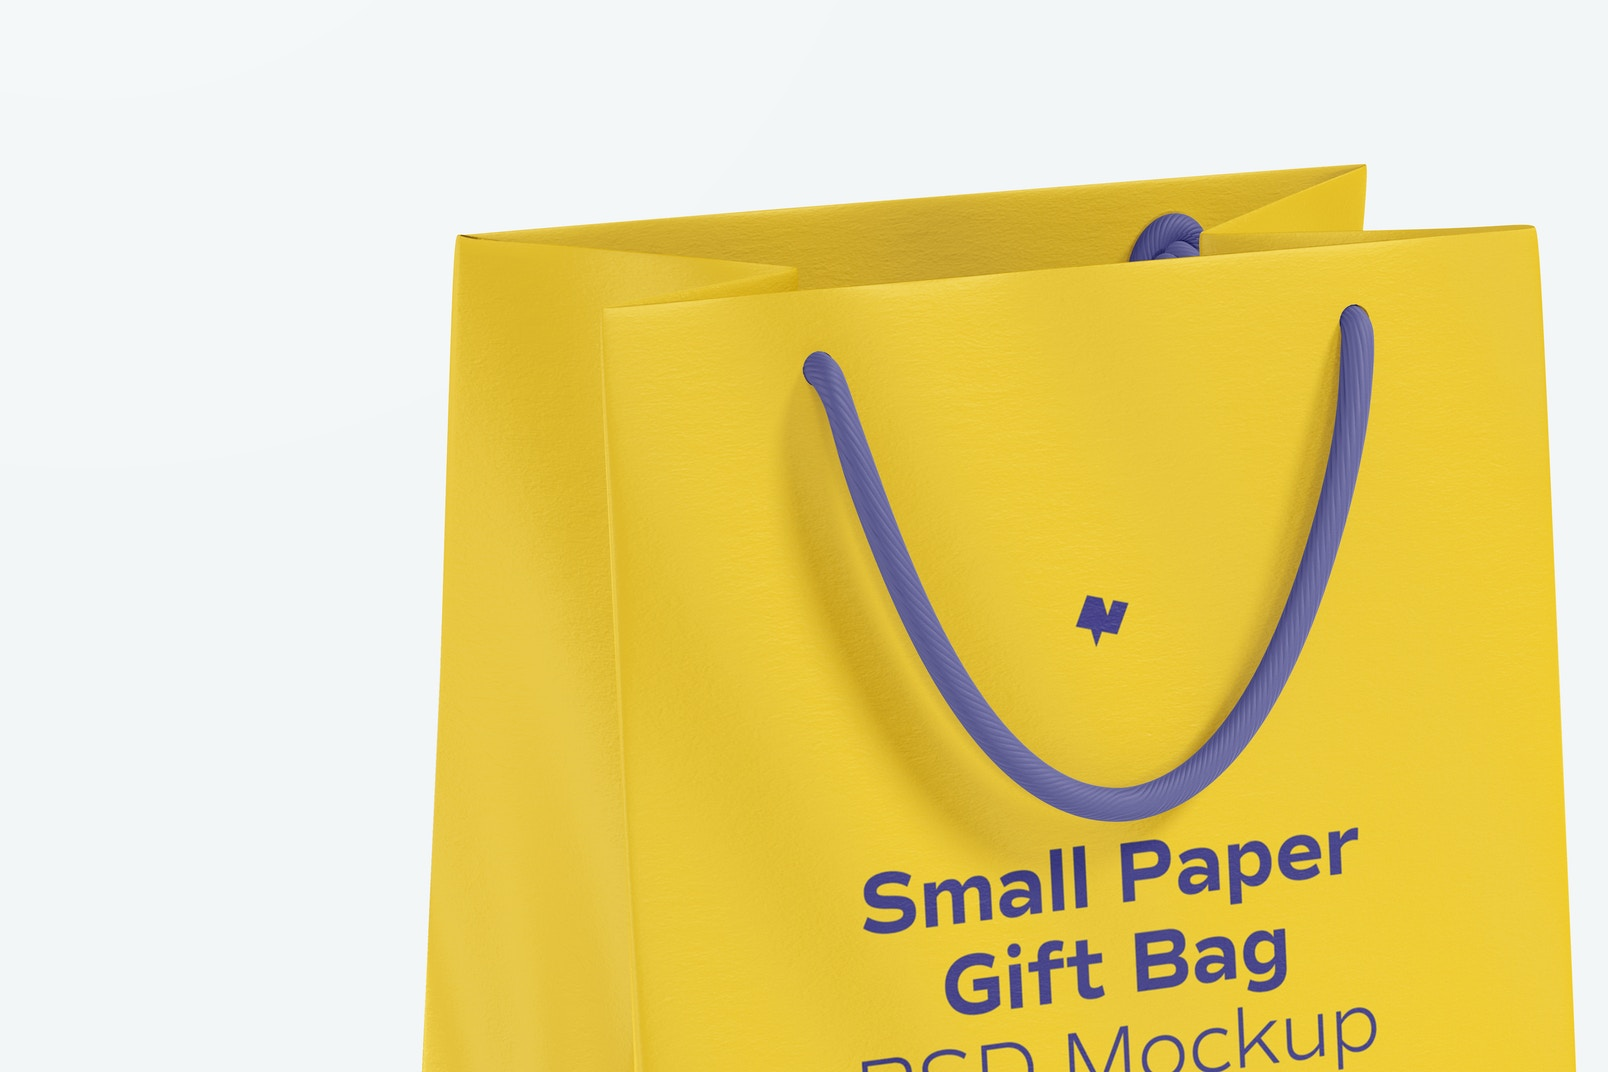 Small Paper Gift Bag With Rope Handle Mockup, Close Up